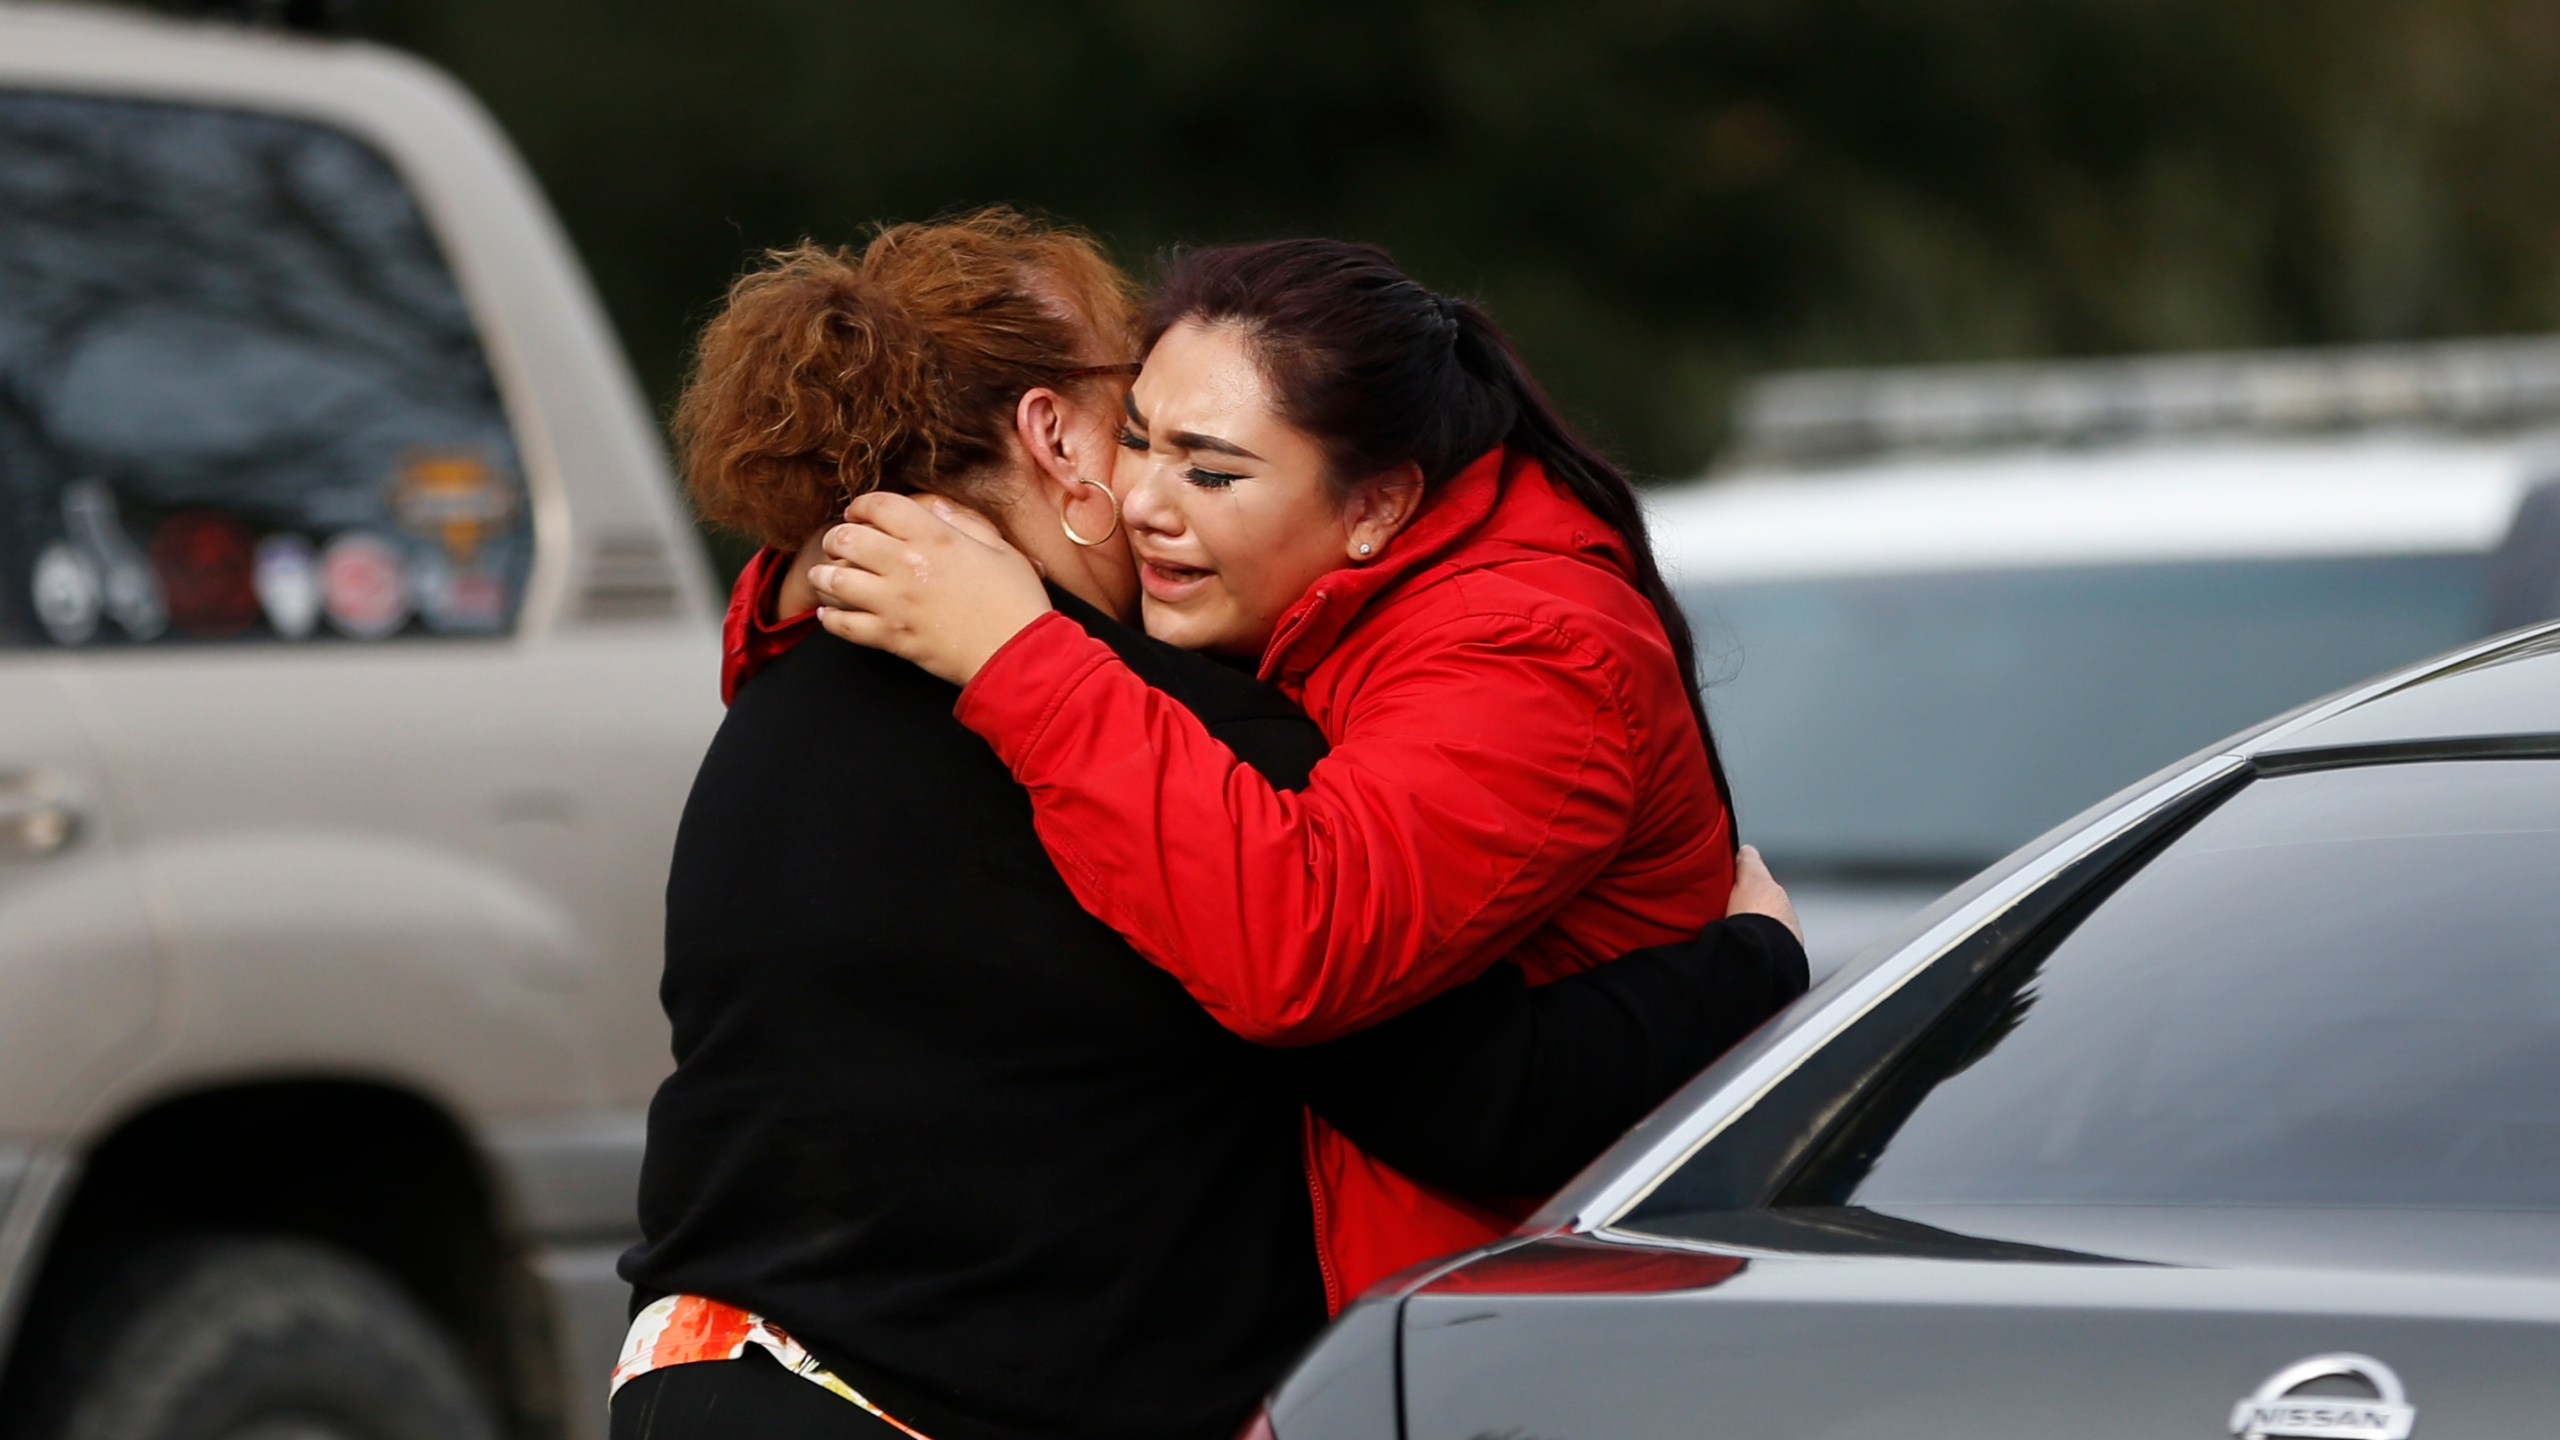 Vanessa Flores, right, embraces another woman after she leaves the locked down Veterans Home of California during an active shooter turned hostage situation on March 9, 2018, in Yountville, California. (Credit: Stephen Lam / Getty Images)